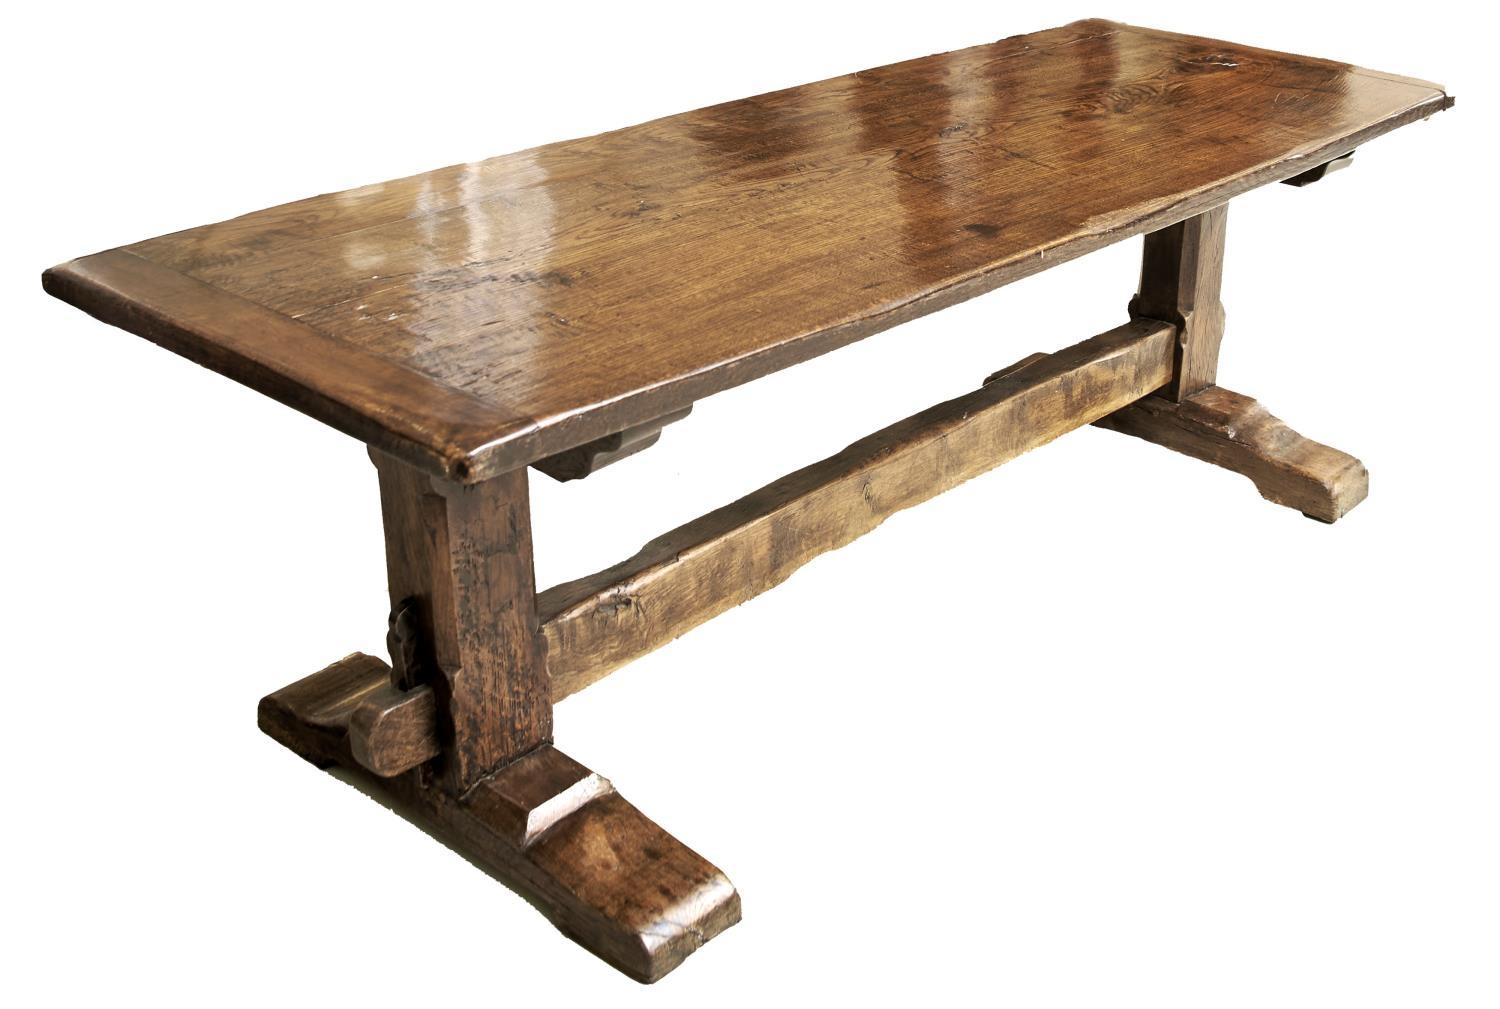 A REPRODUCTION OAK REFECTORY TABLE IN MID 17TH C STYLE, THE CLEATED PLANK TOP ABOVE CHAMFERED SQUARE